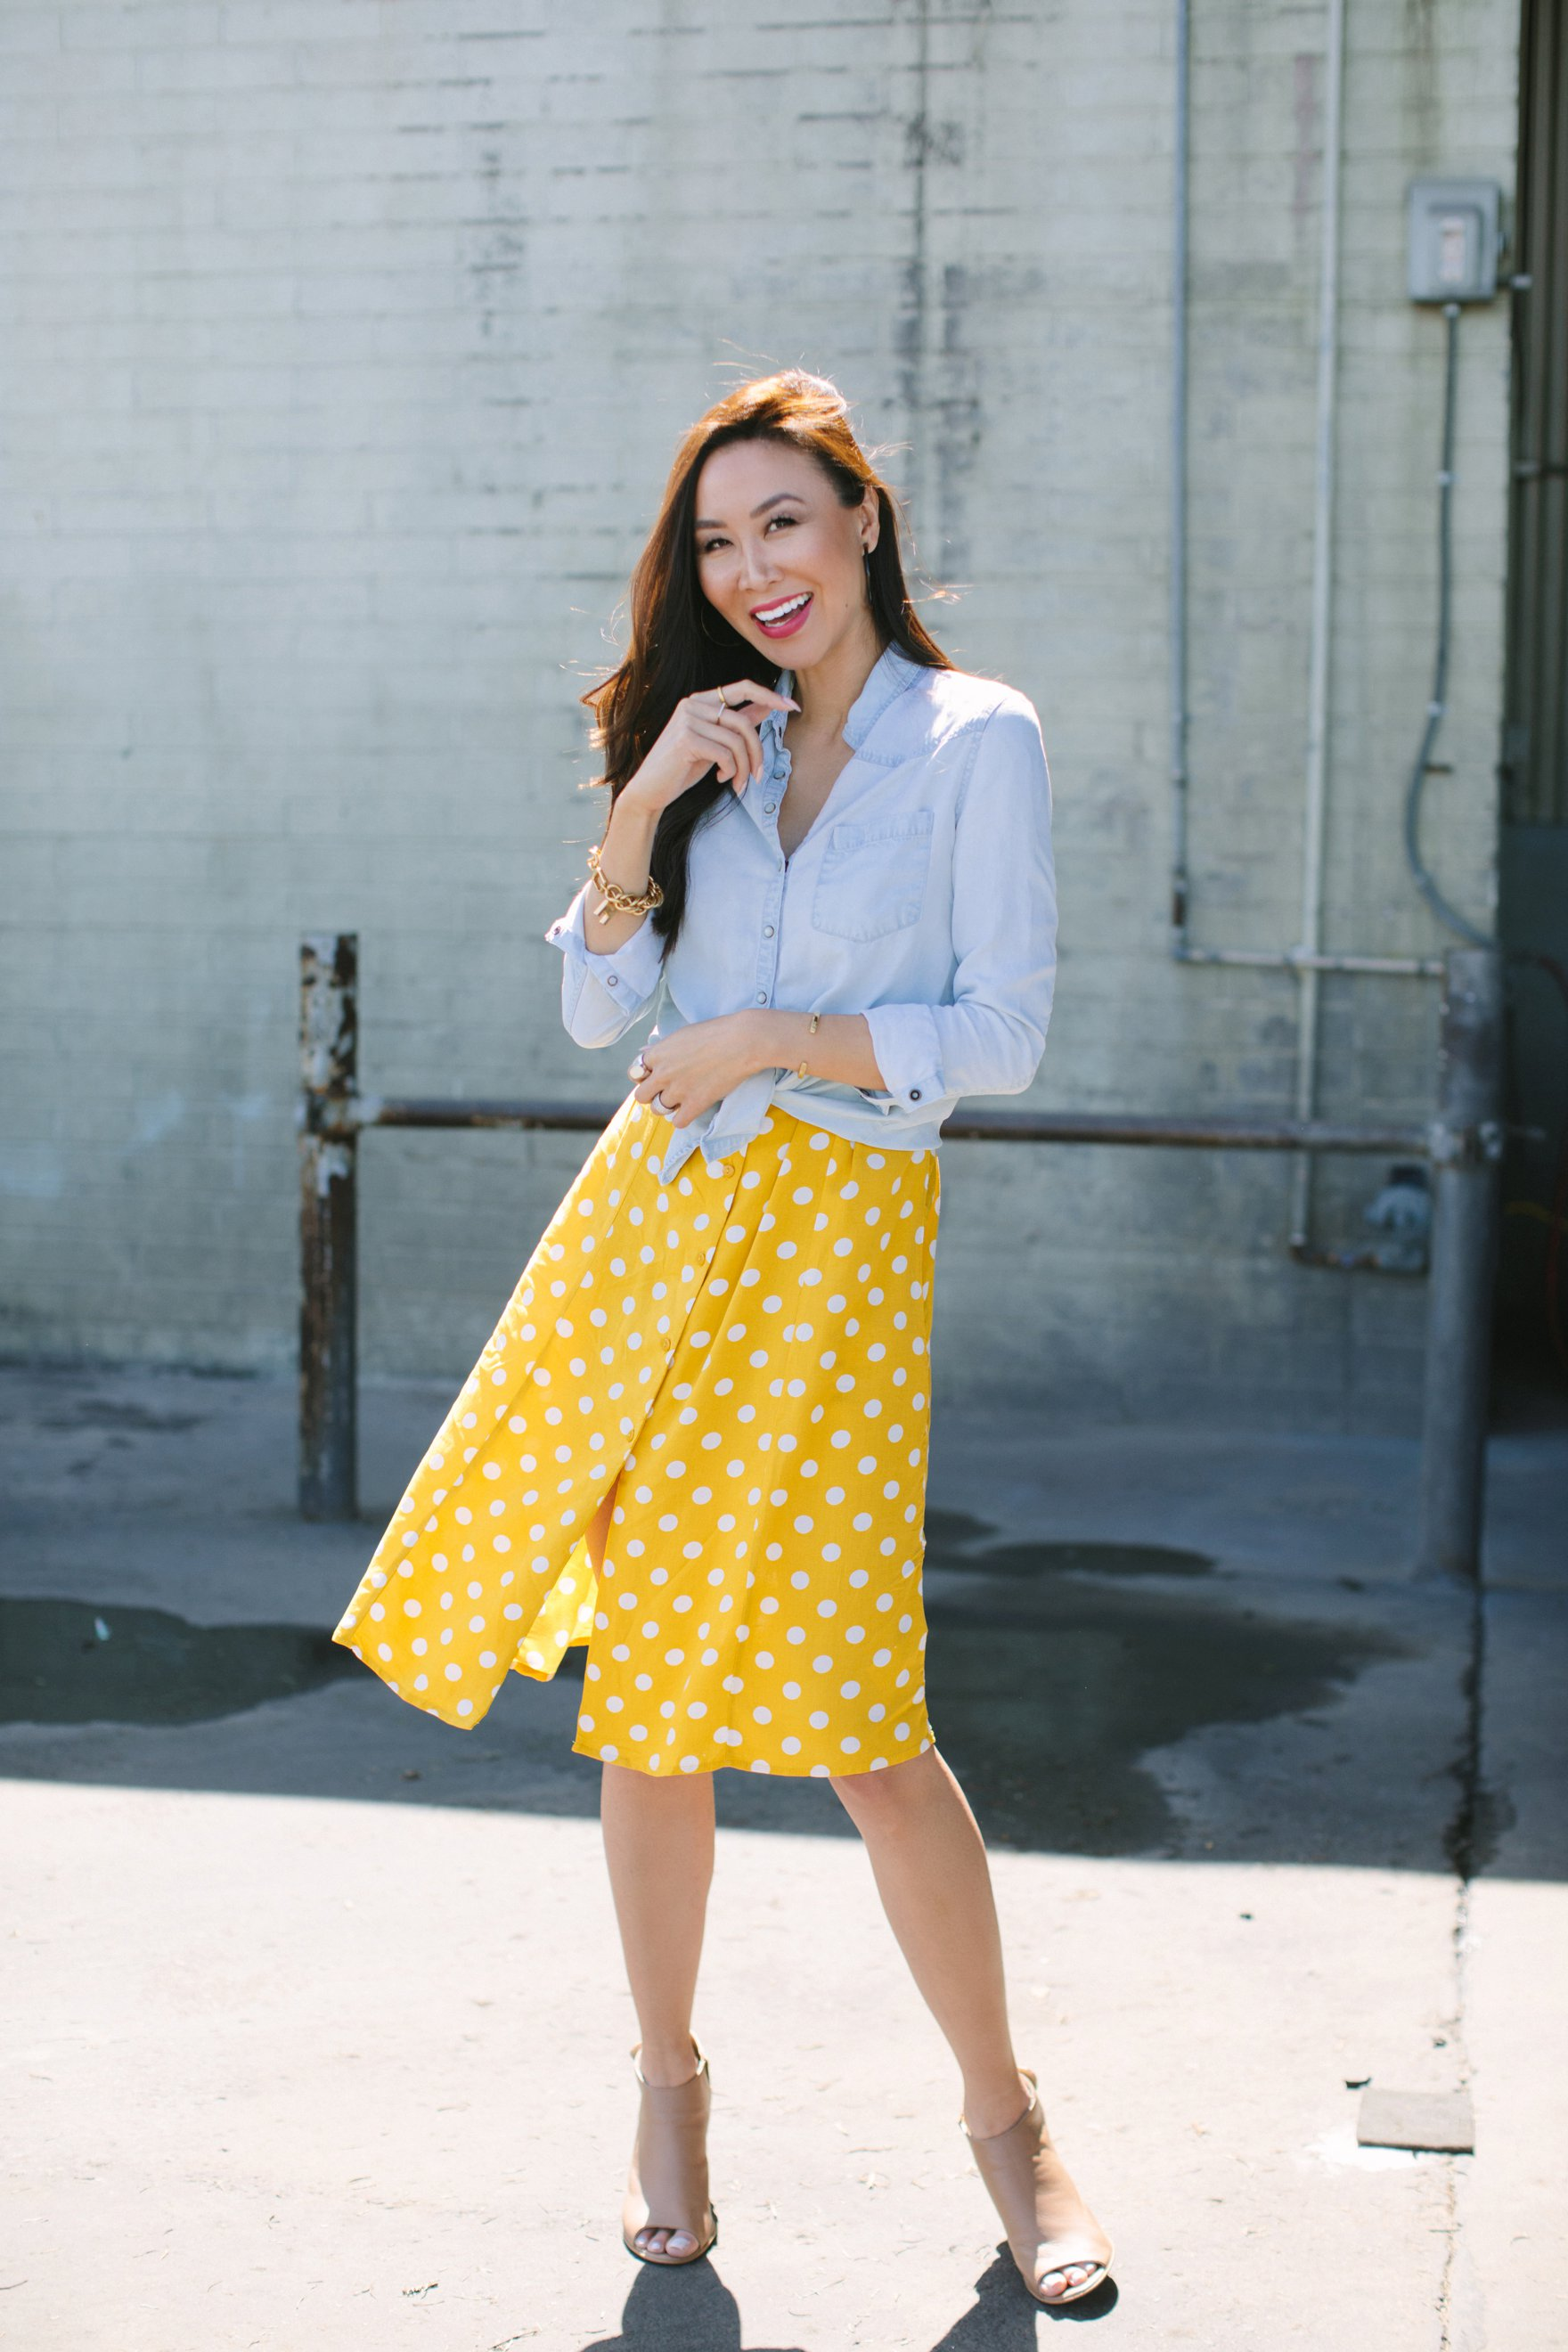 Yellow and white polka dot dress forever 21 paired with a chambray top featuring India hicks bracelet and other jewels lifestyle blogger Diana Elizabeth